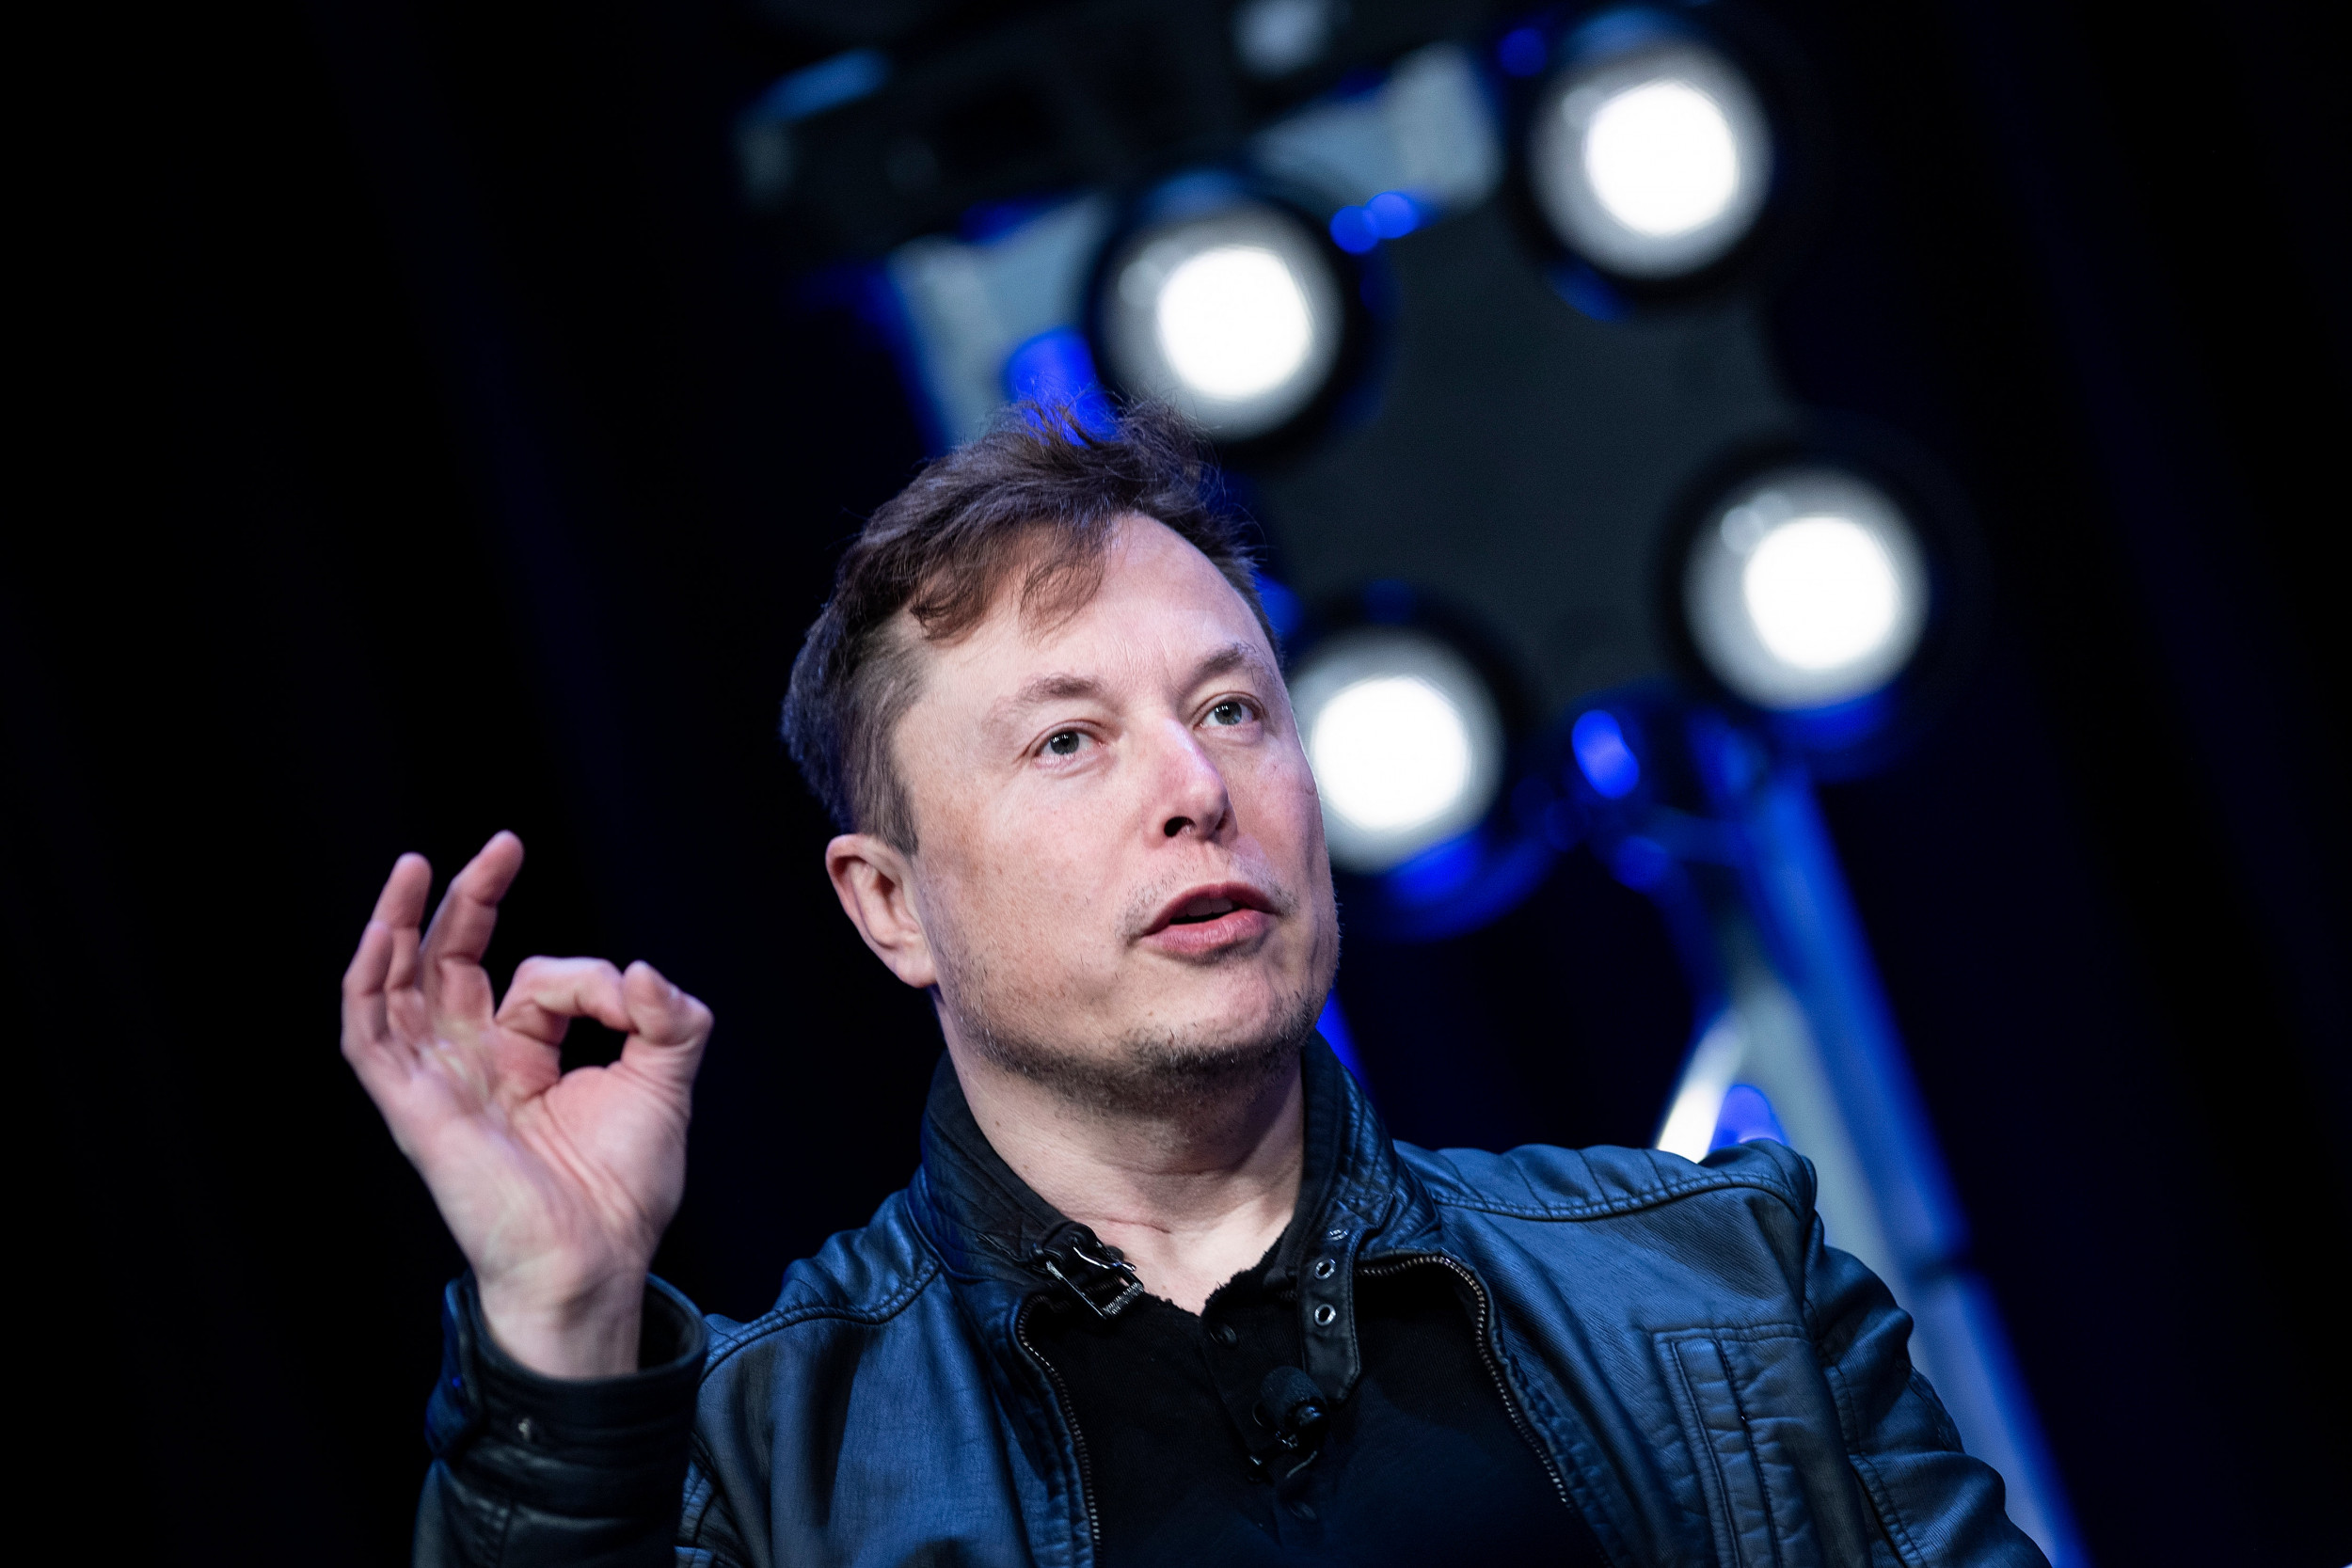 Elon Musk Says Bitcoin 'Almost as BS' as Regular Money after Tesla Buys Cryptocurrency thumbnail